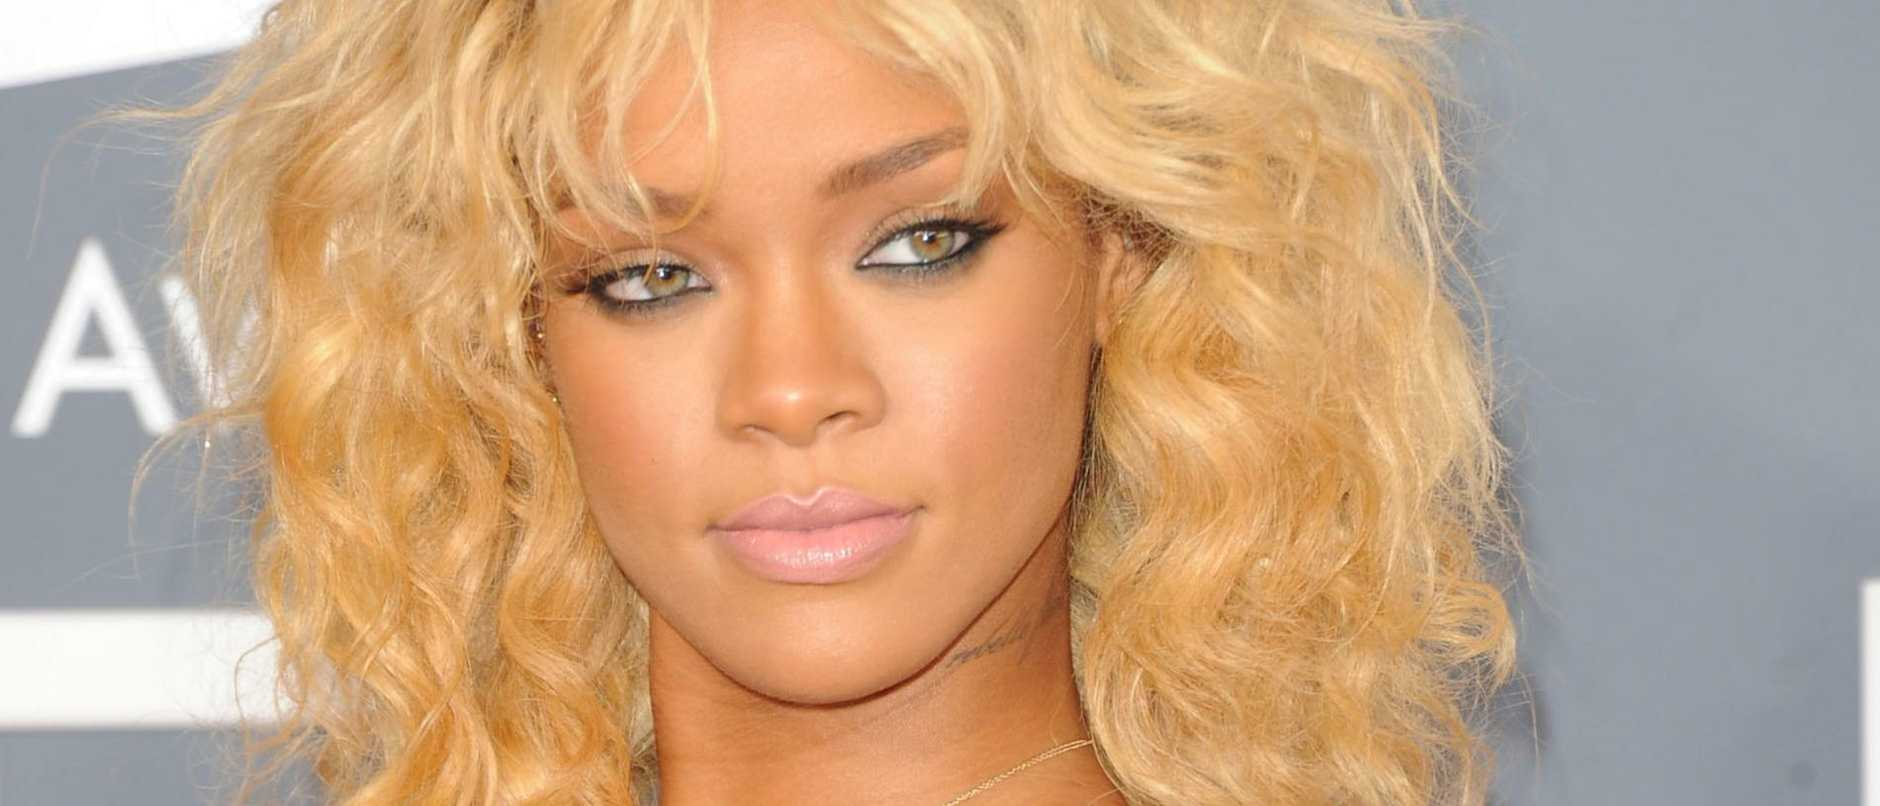 Rihanna is the latest star to release a statement on the violence between Israelis and Palestinians, copping heat for her choice of words.